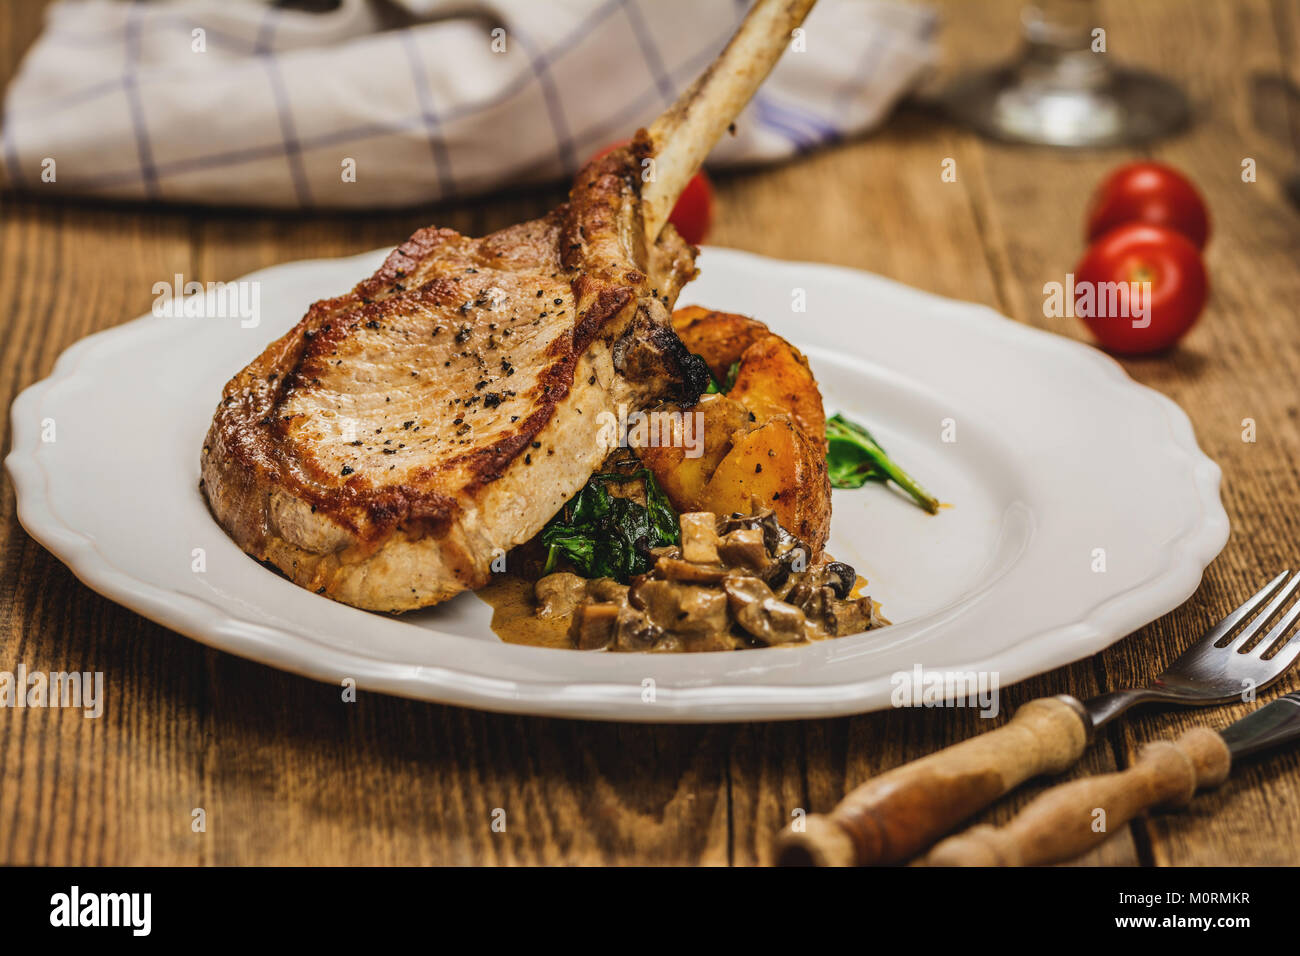 Baked pork chops or cutlet with mushroom sauce and potatoes with spinach - Stock Image